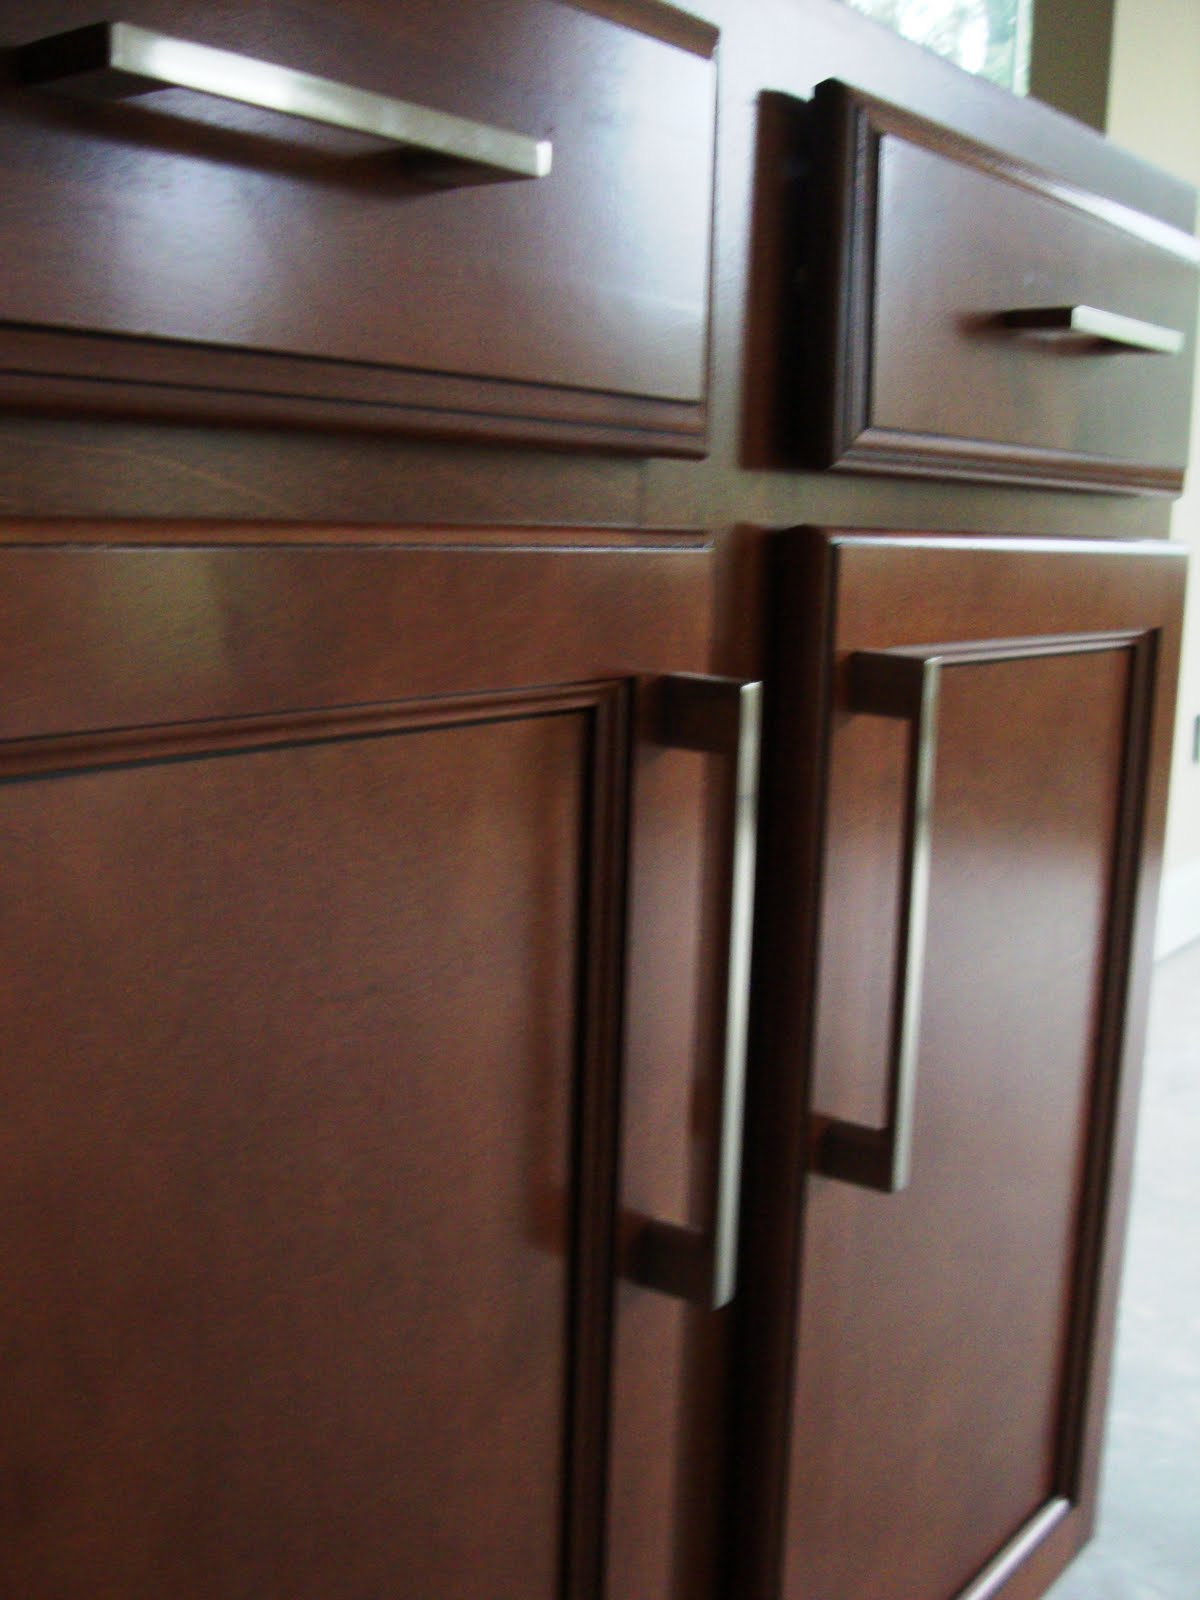 Kitchen Cabinet Hardware Pulls Cleaning Cabinets Michael Blanchard Handyman Services Small Projects That